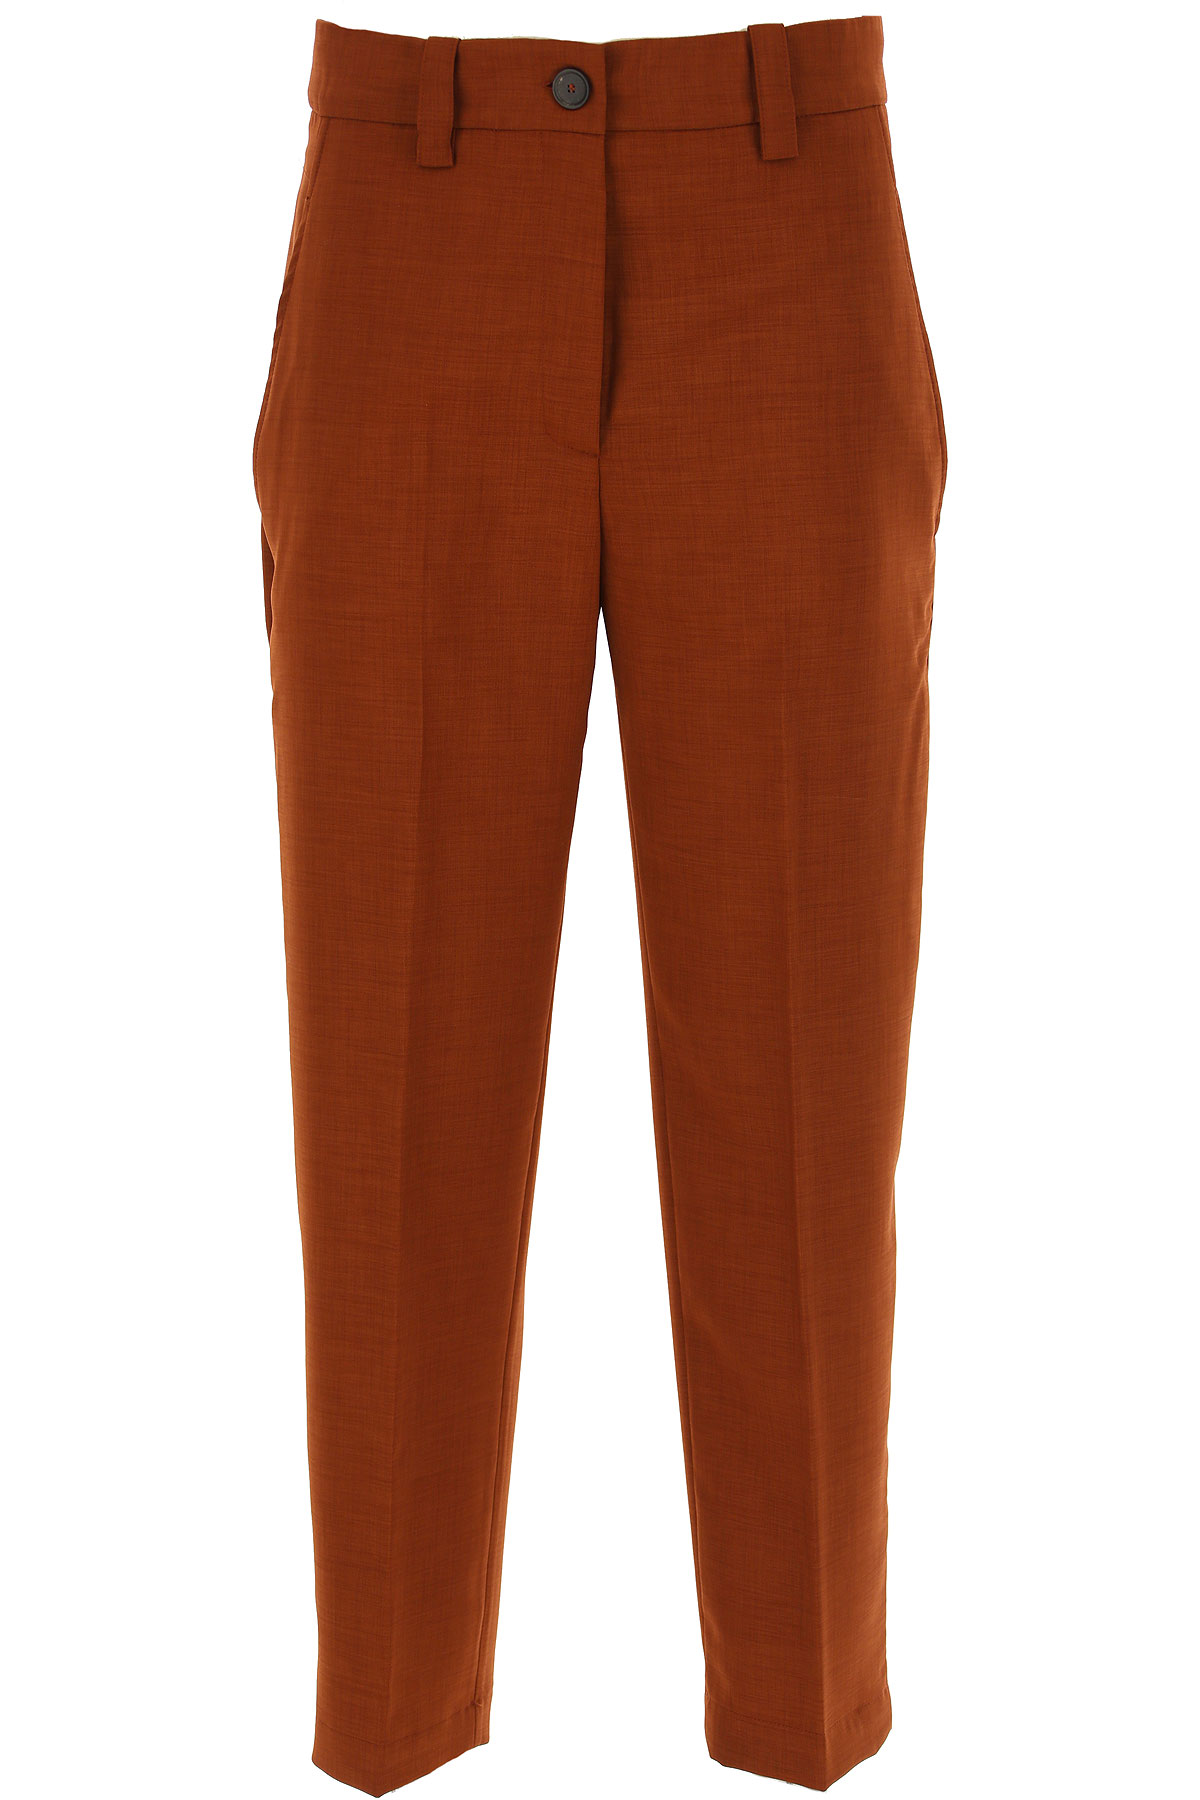 Erika Cavallini Pants for Women On Sale, Brown, polyestere, 2019, 24 26 28